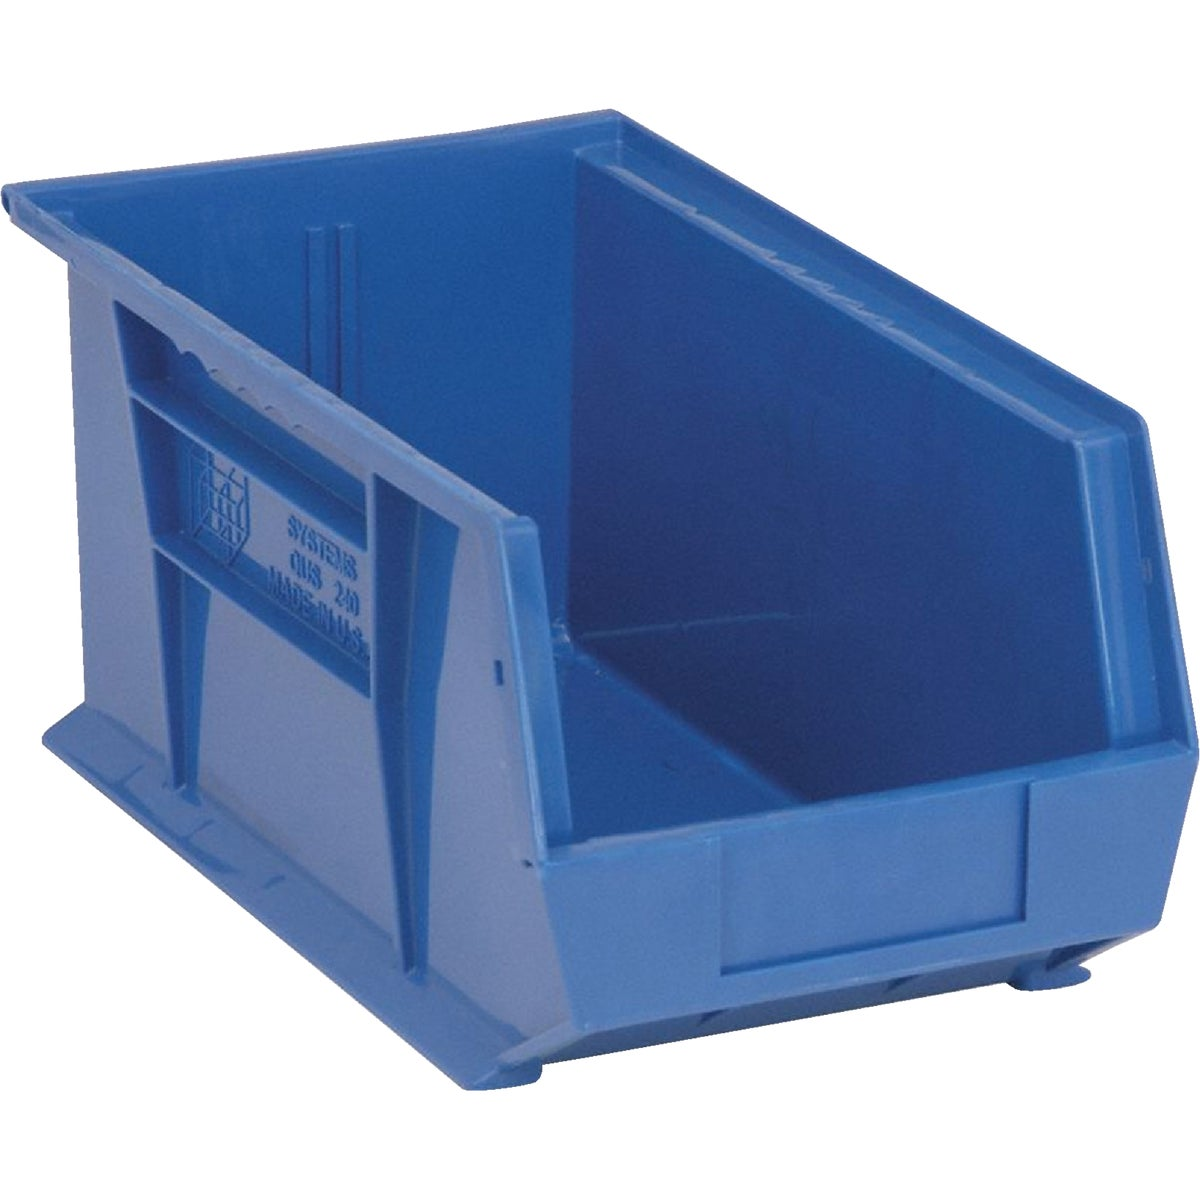 LARGE BLUE STORAGE BIN - 30240BLUUPC by Akro Mils